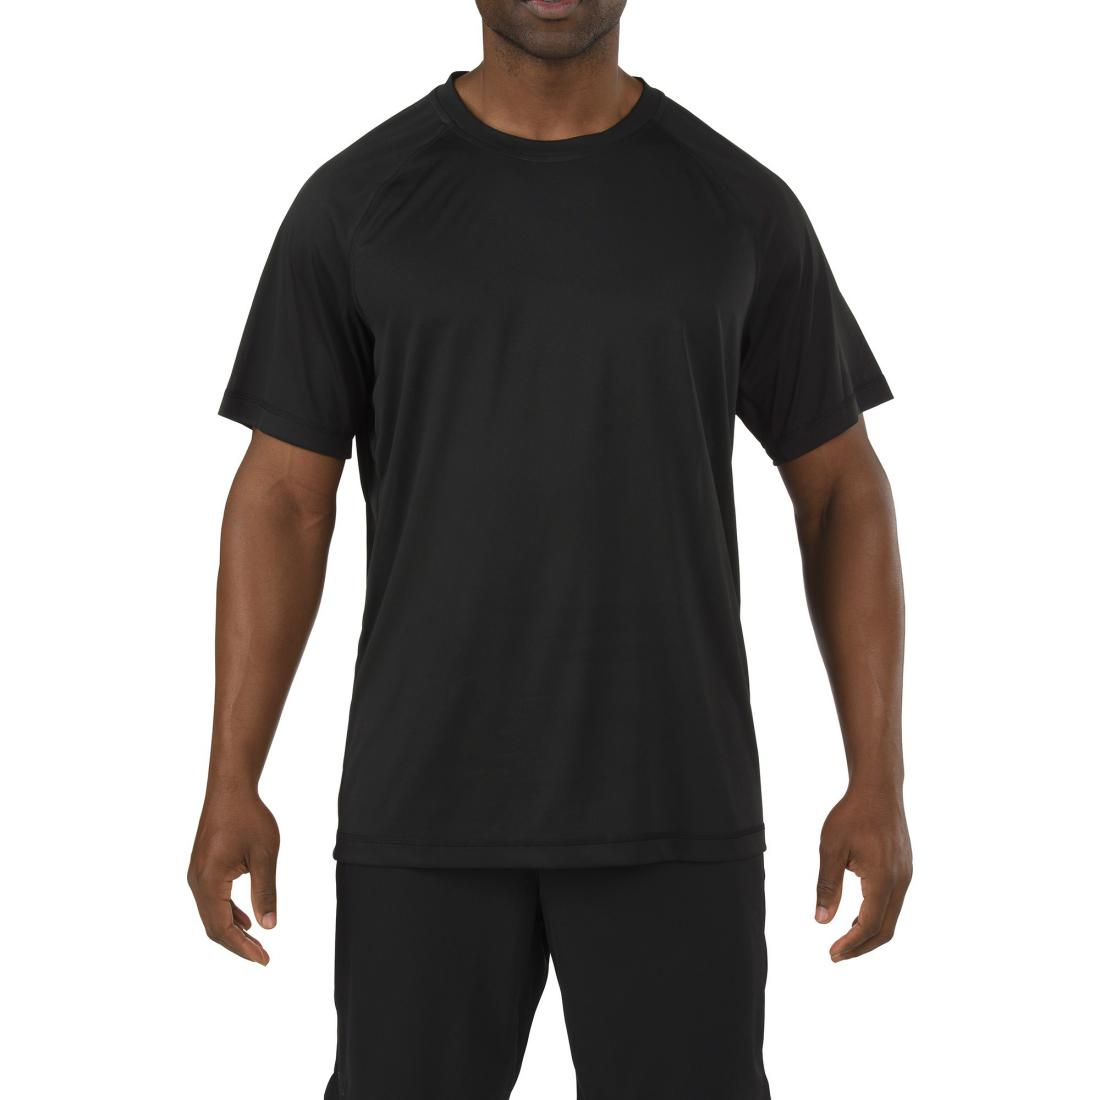 5.11 Tactical 41017 Men Utility Pt Shirt Black